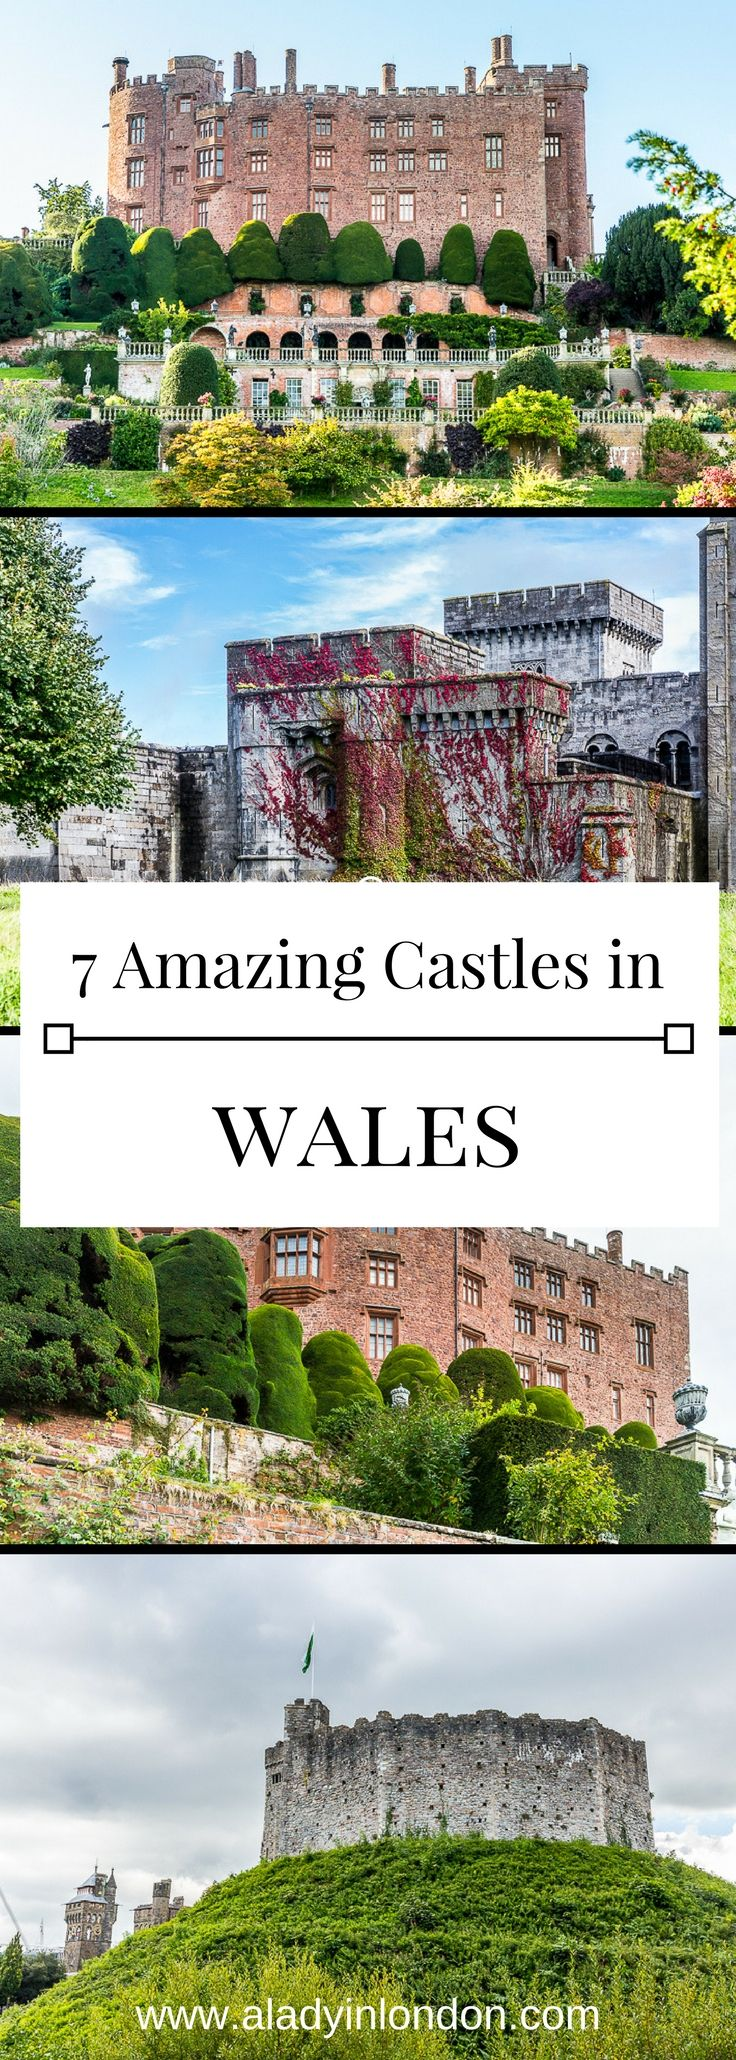 7 amazing castles in Wales, from coastal beauties to Cardiff Castle itself.  #wales #castle #uk #travel